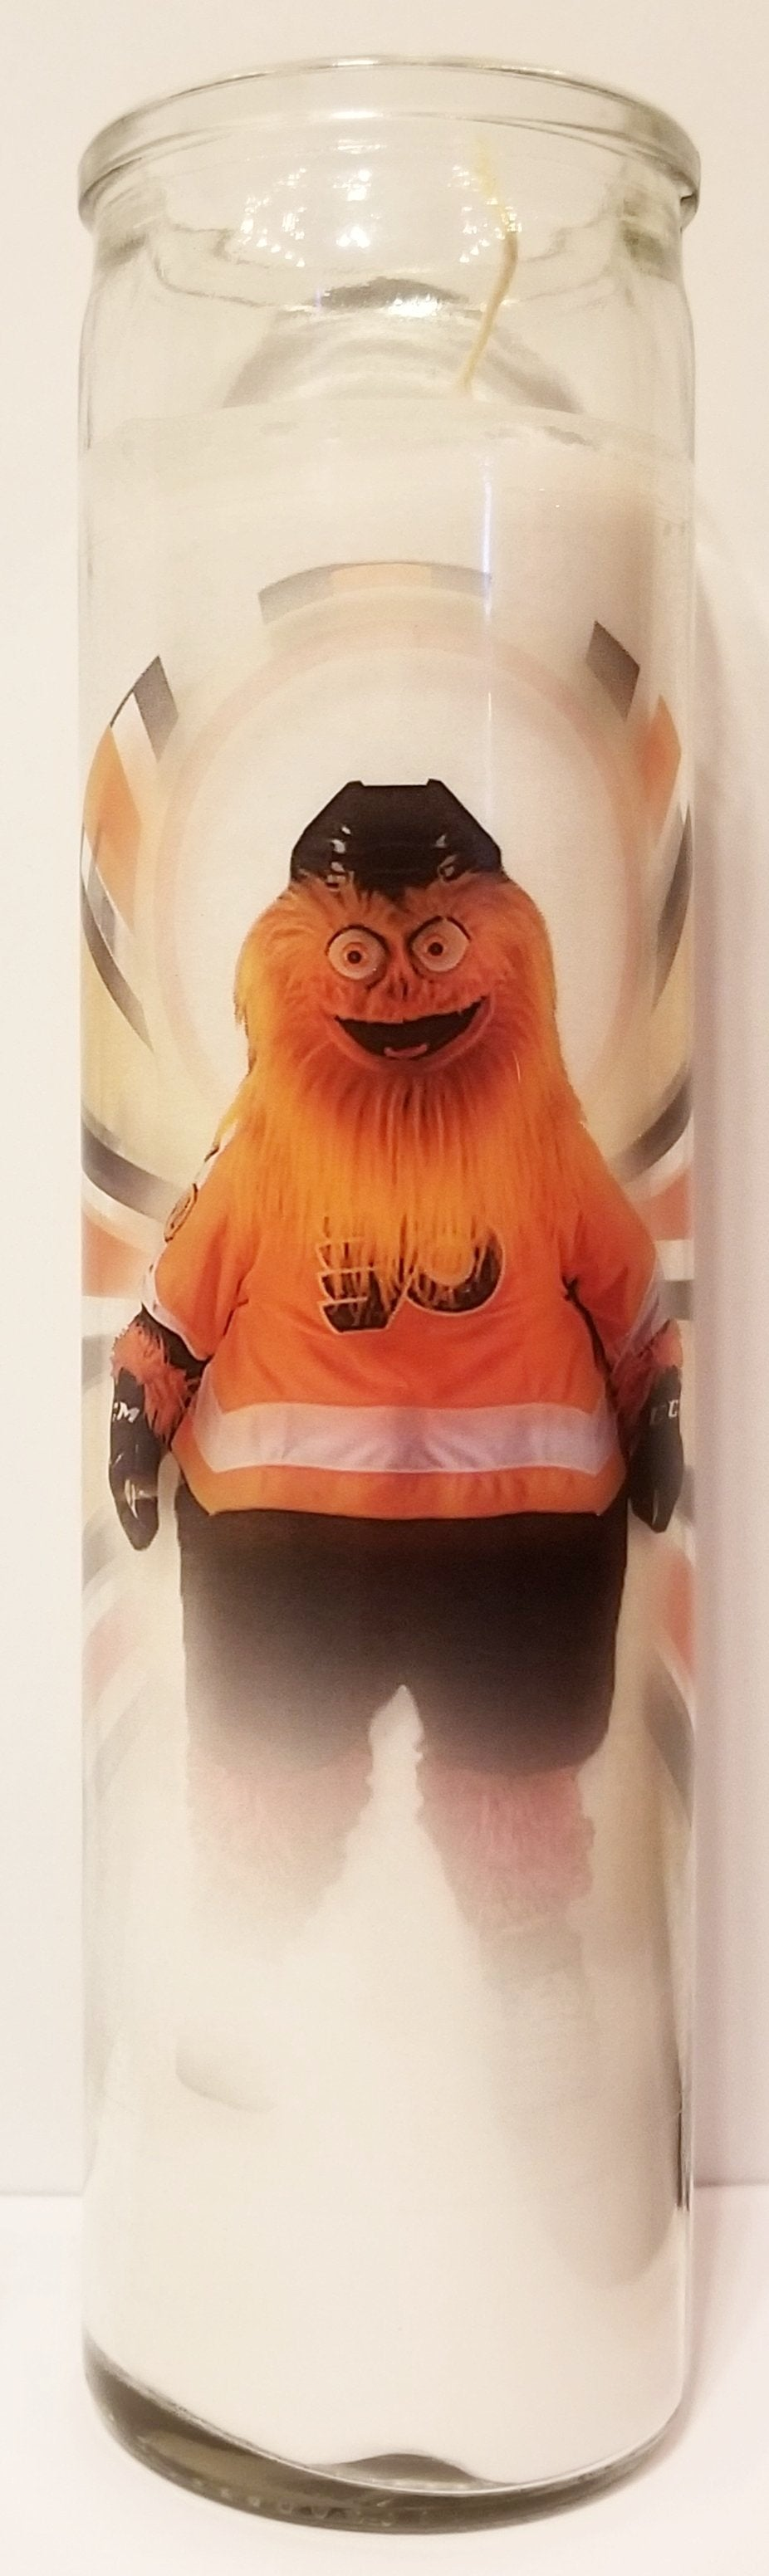 Gritty Candle